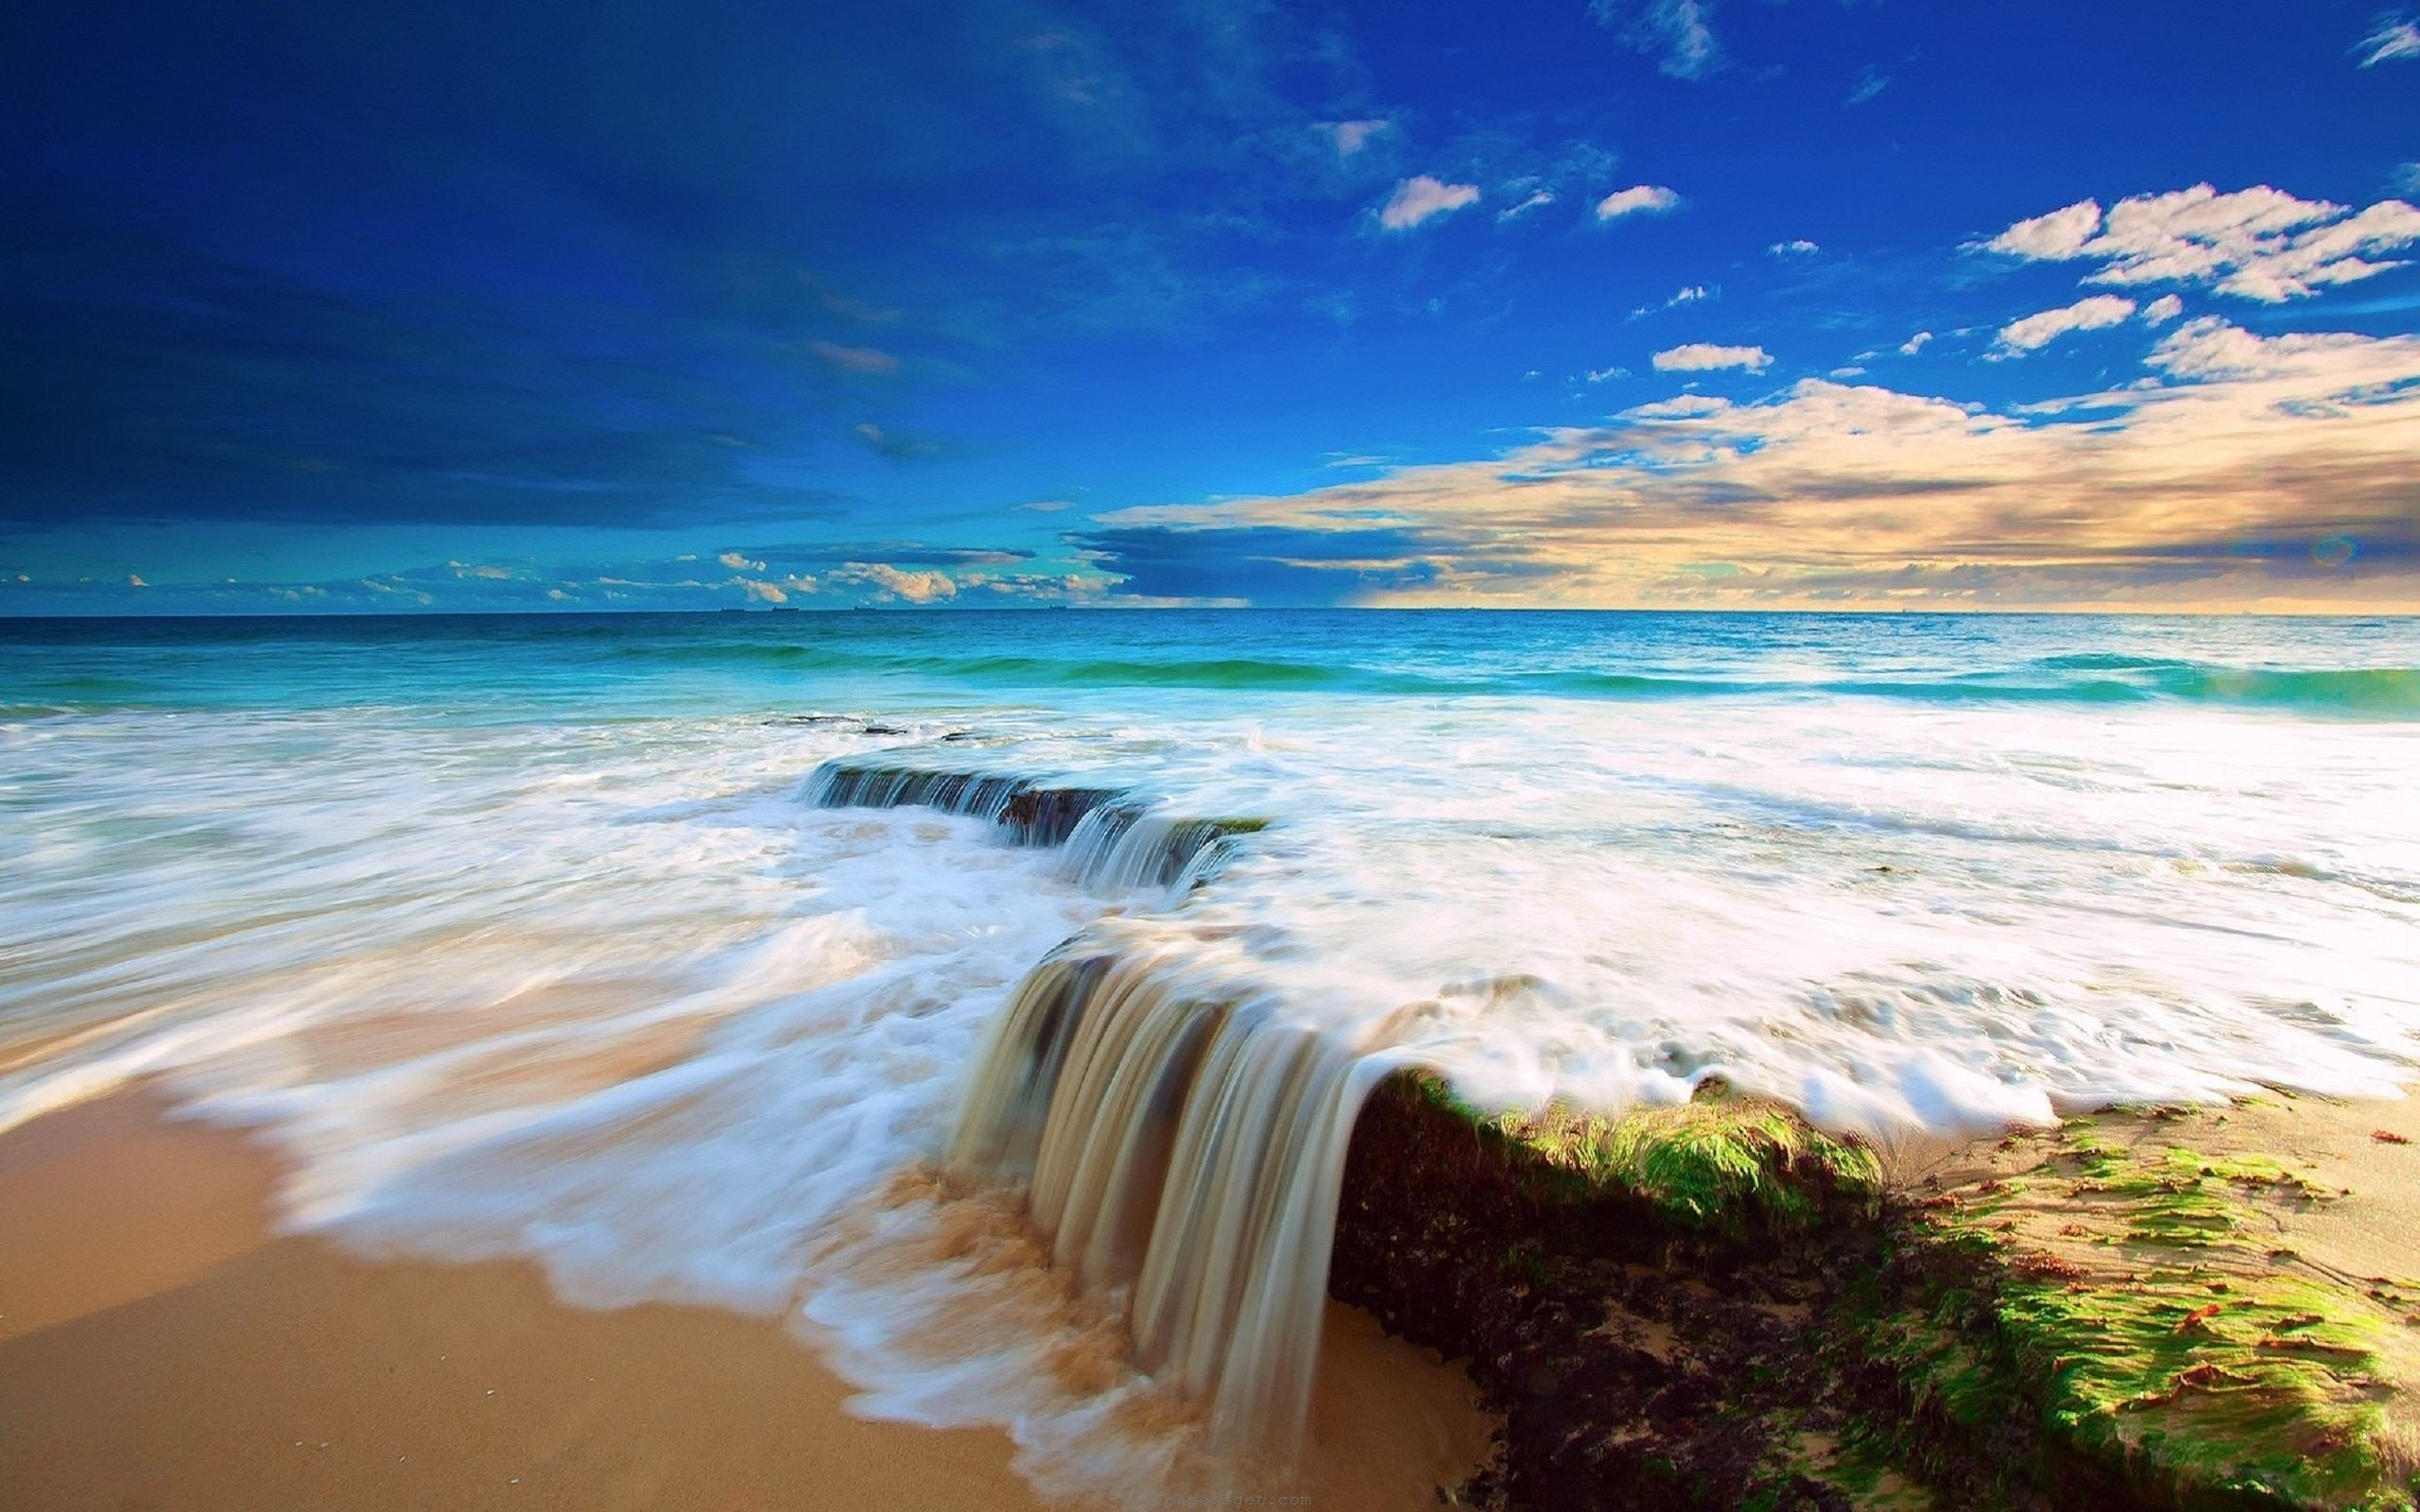 Beach Ocean Waves Water Favim Com HD dekstop wallpapers   Beach Ocean 2560x1600